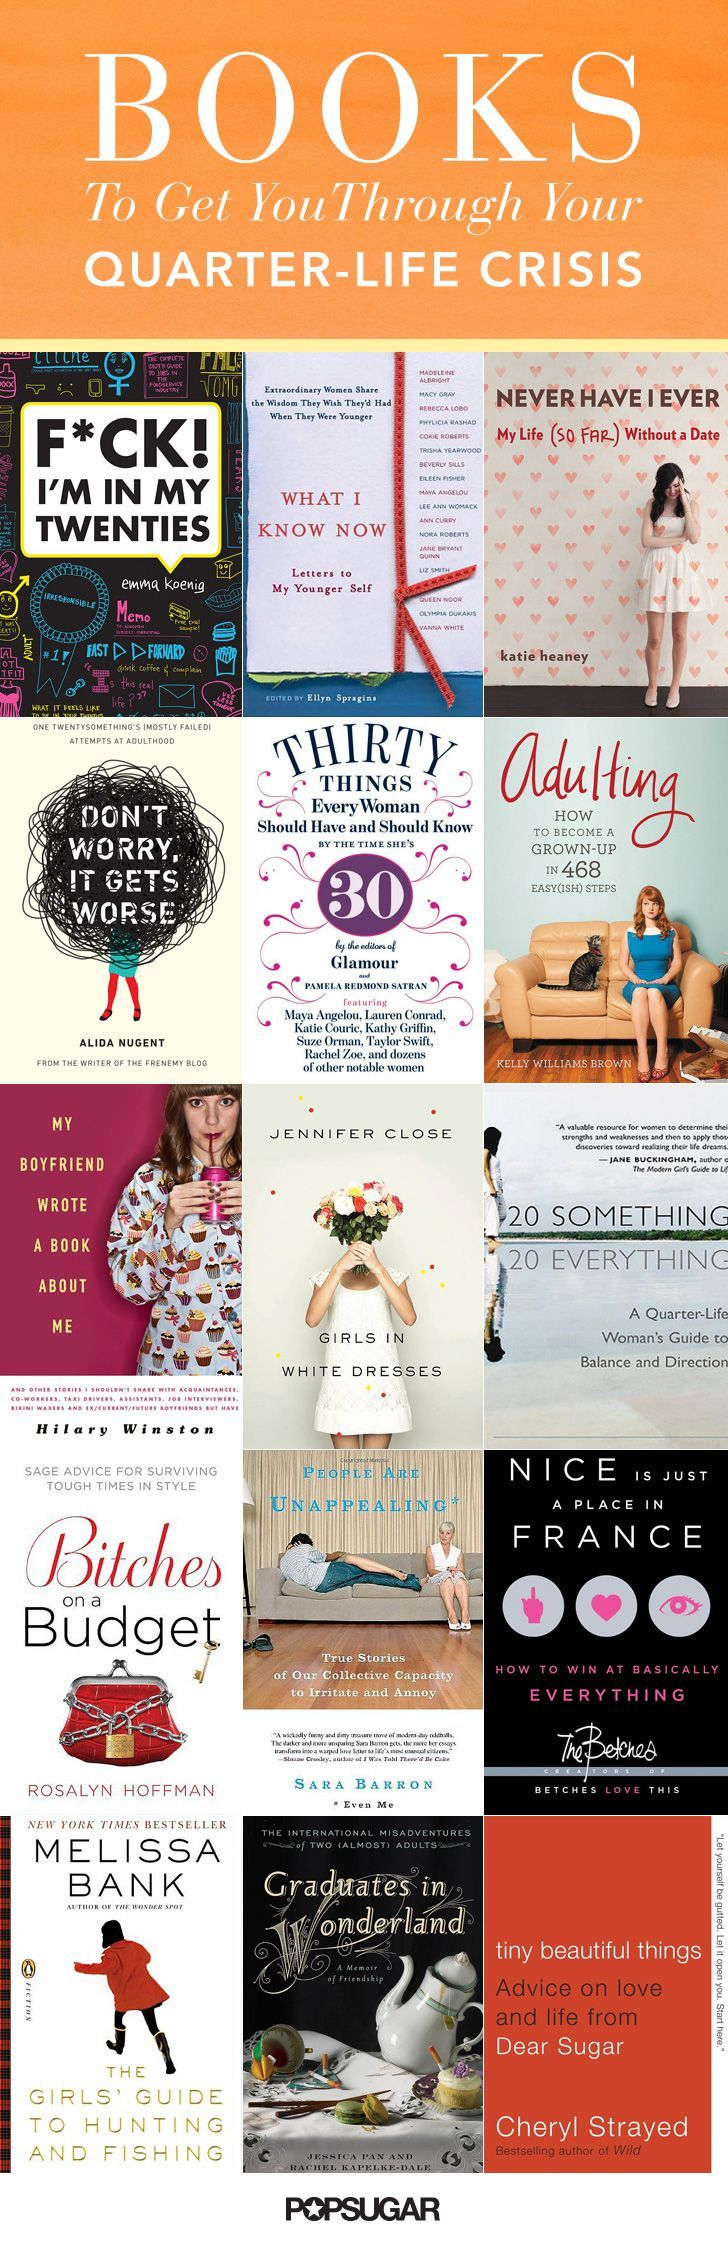 Because making it through your 20s isn't always an easy feat, here are some good reads to help you out along the way.